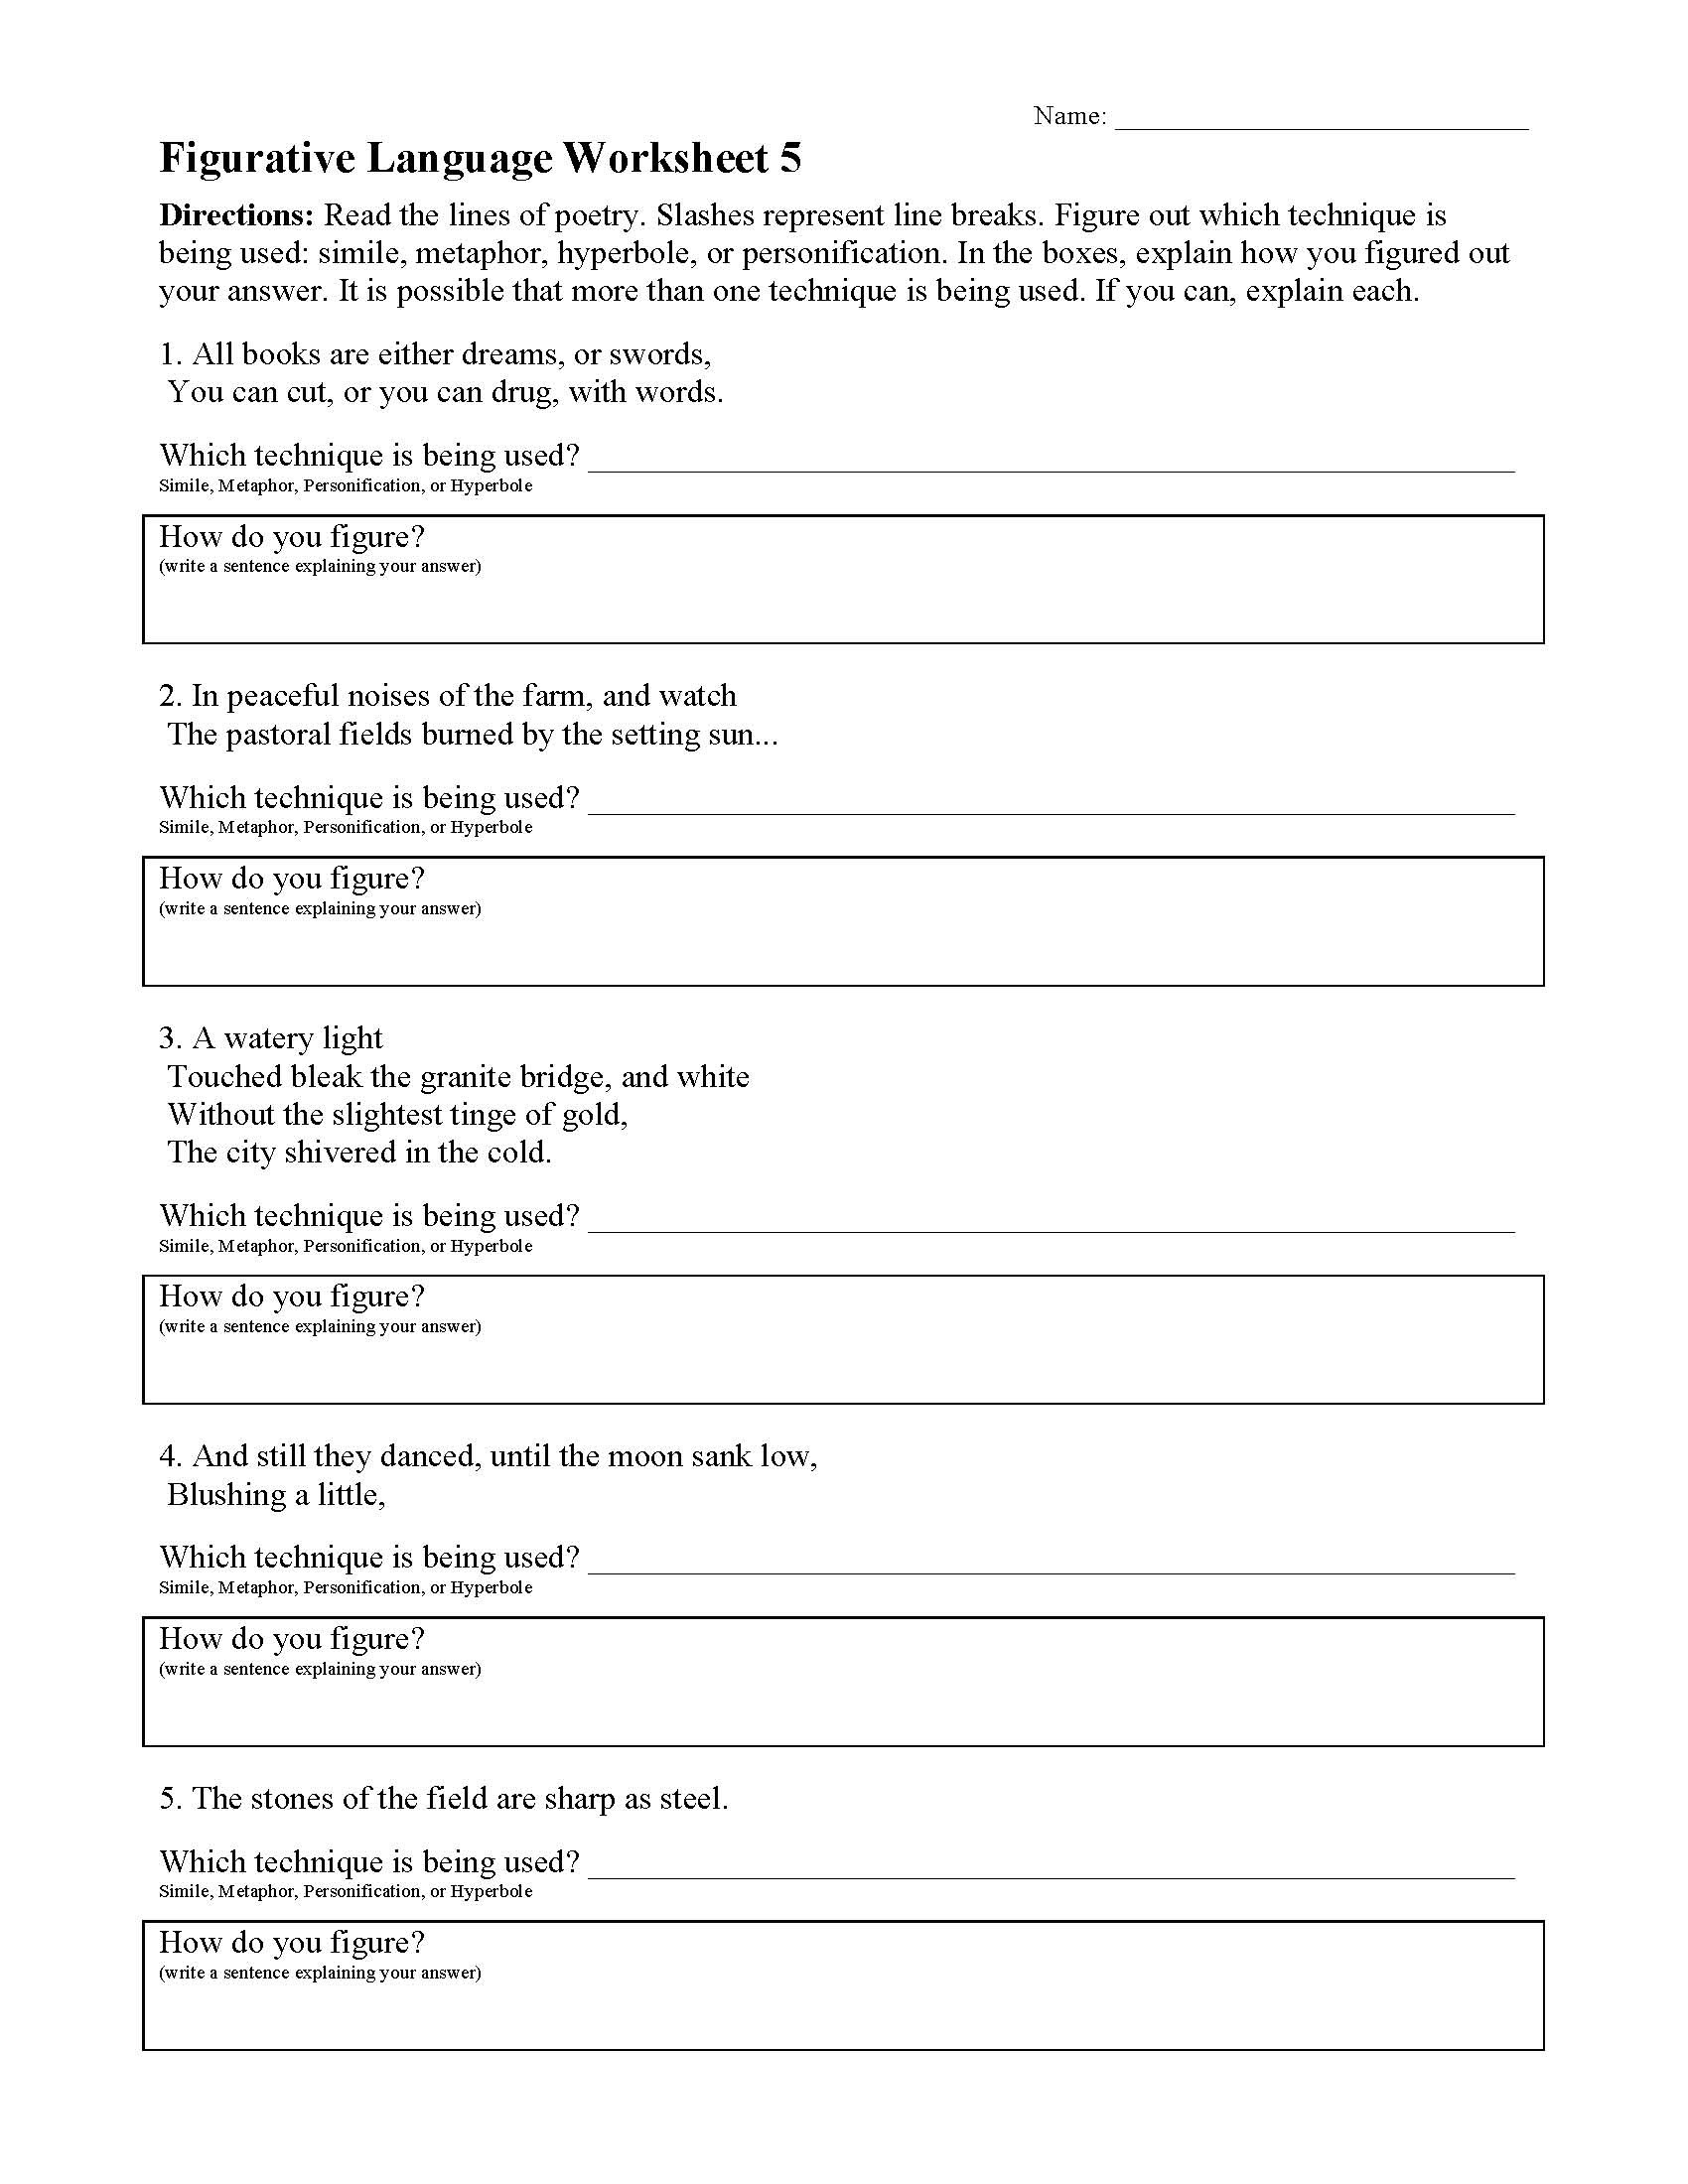 Figurative Language Figurative Language Worksheet Good